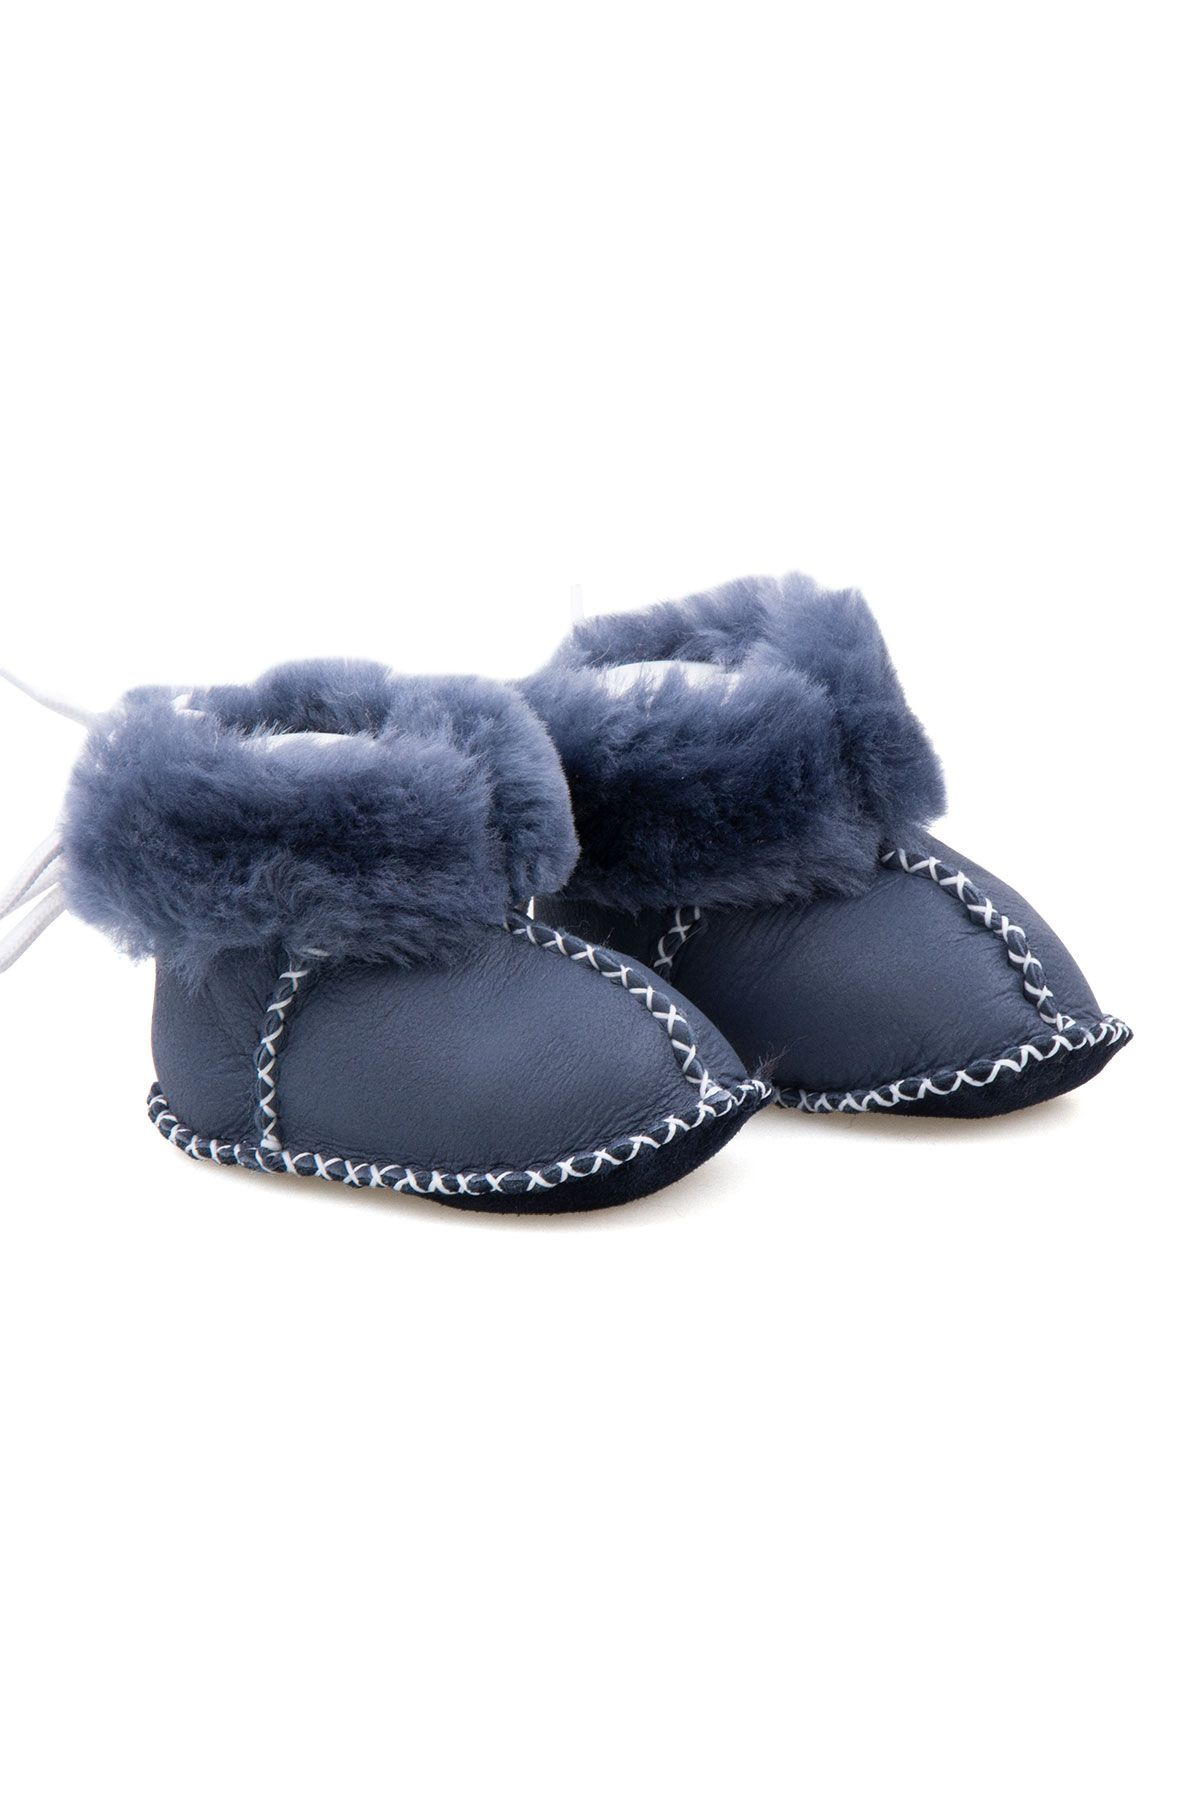 Pegia Shearling Baby's Booties 141113 Blue